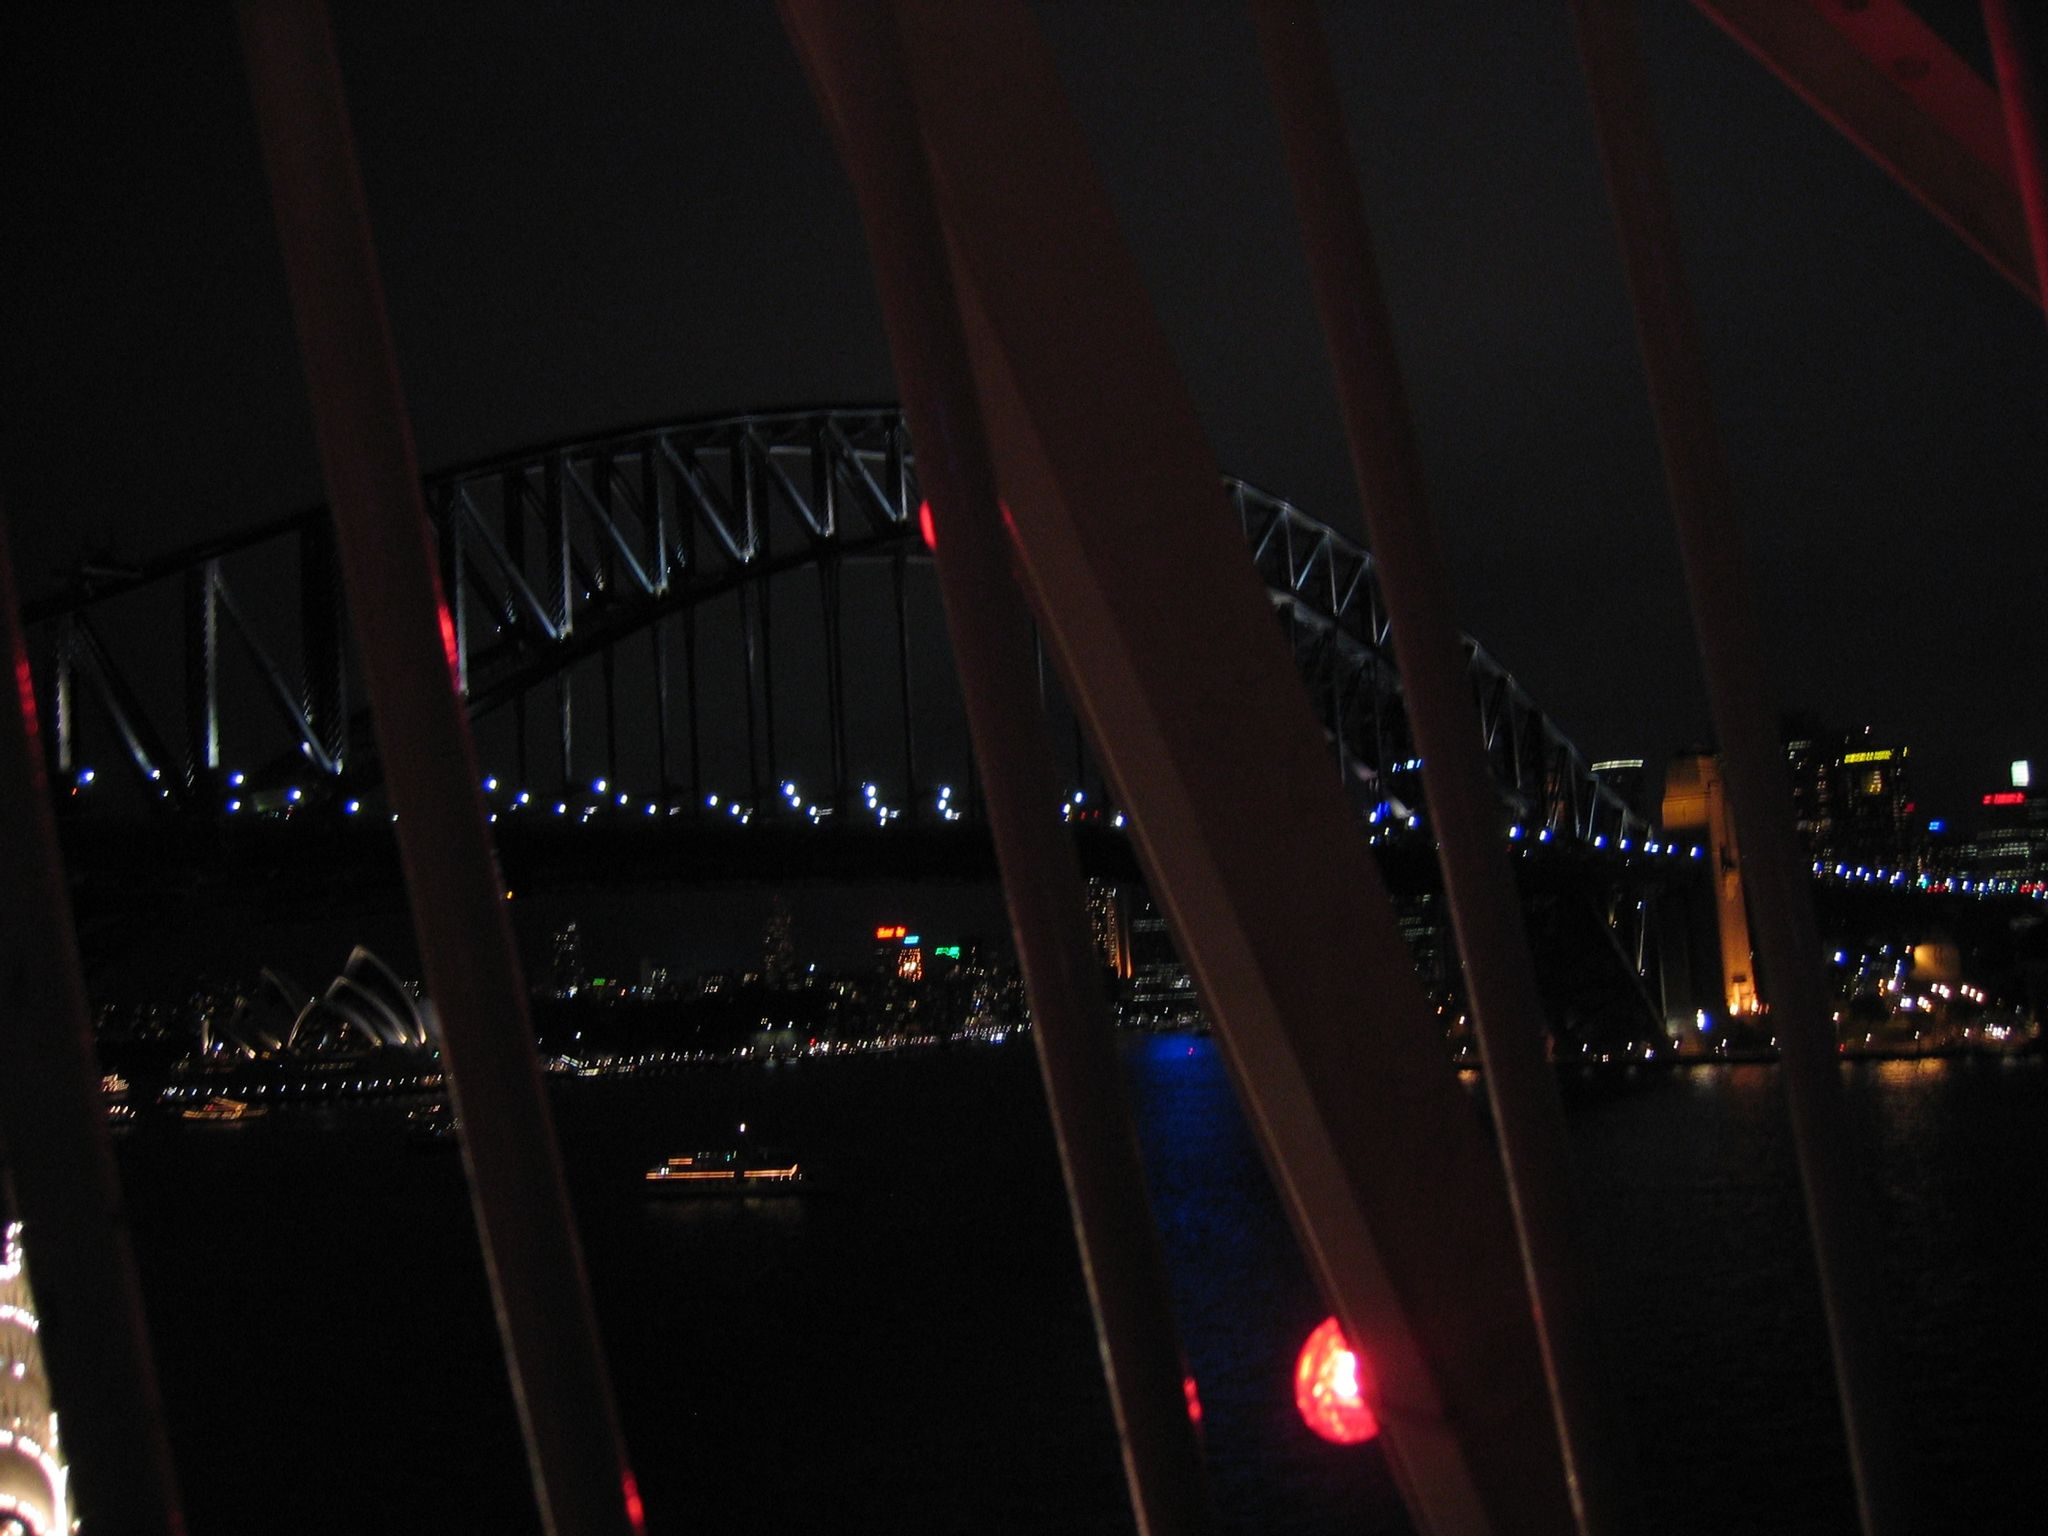 A very dark photo of the Sydney Harbour Bridge, taken from high up on a ferris wheel.